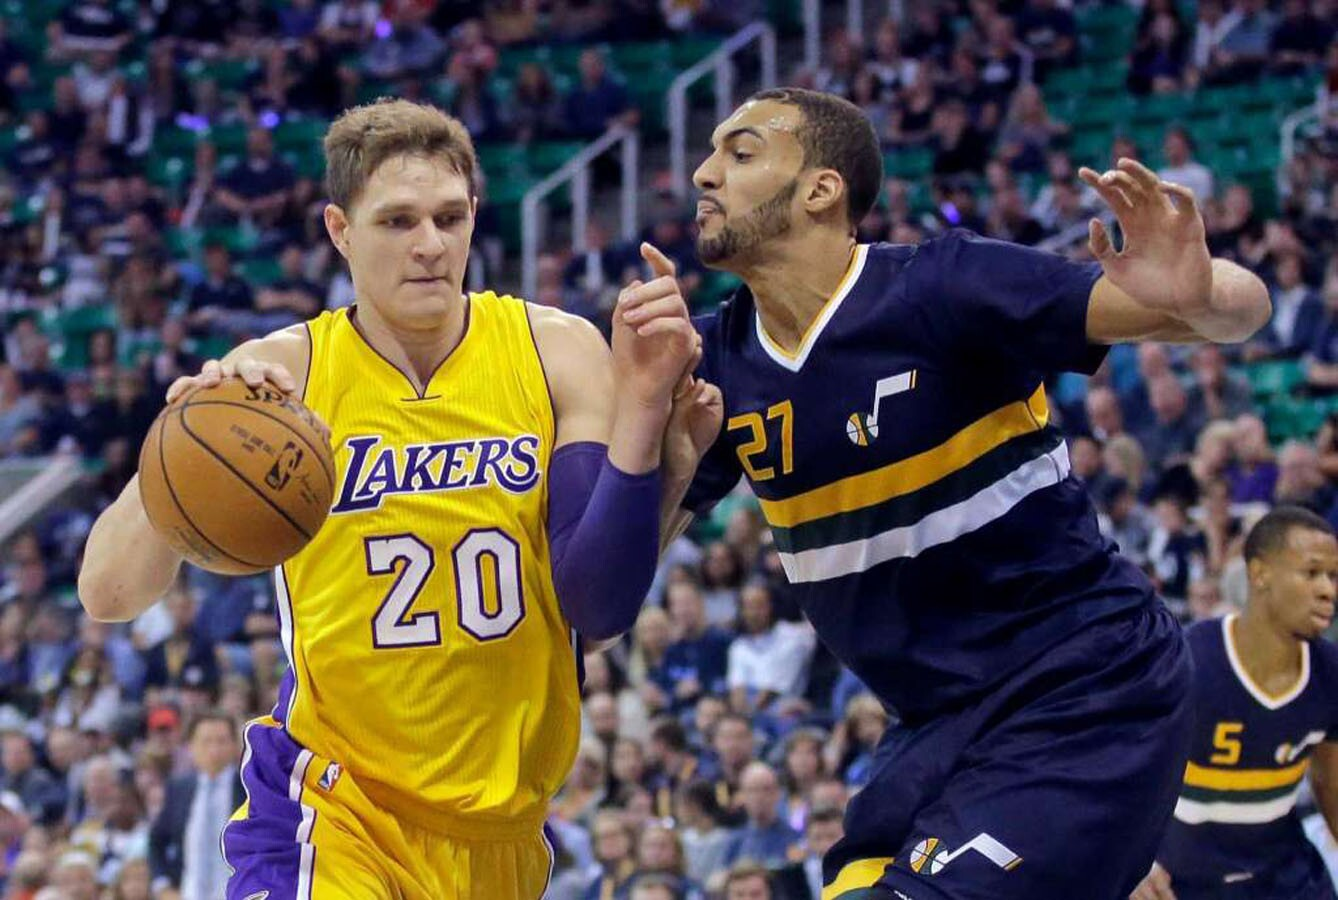 Utah Jazz center Rudy Gobert (27) defends Los Angeles Lakers center Timofey Mozgov (20) during the first quarter of an NBA basketball game Friday, Oct. 28, 2016, in Salt Lake City.